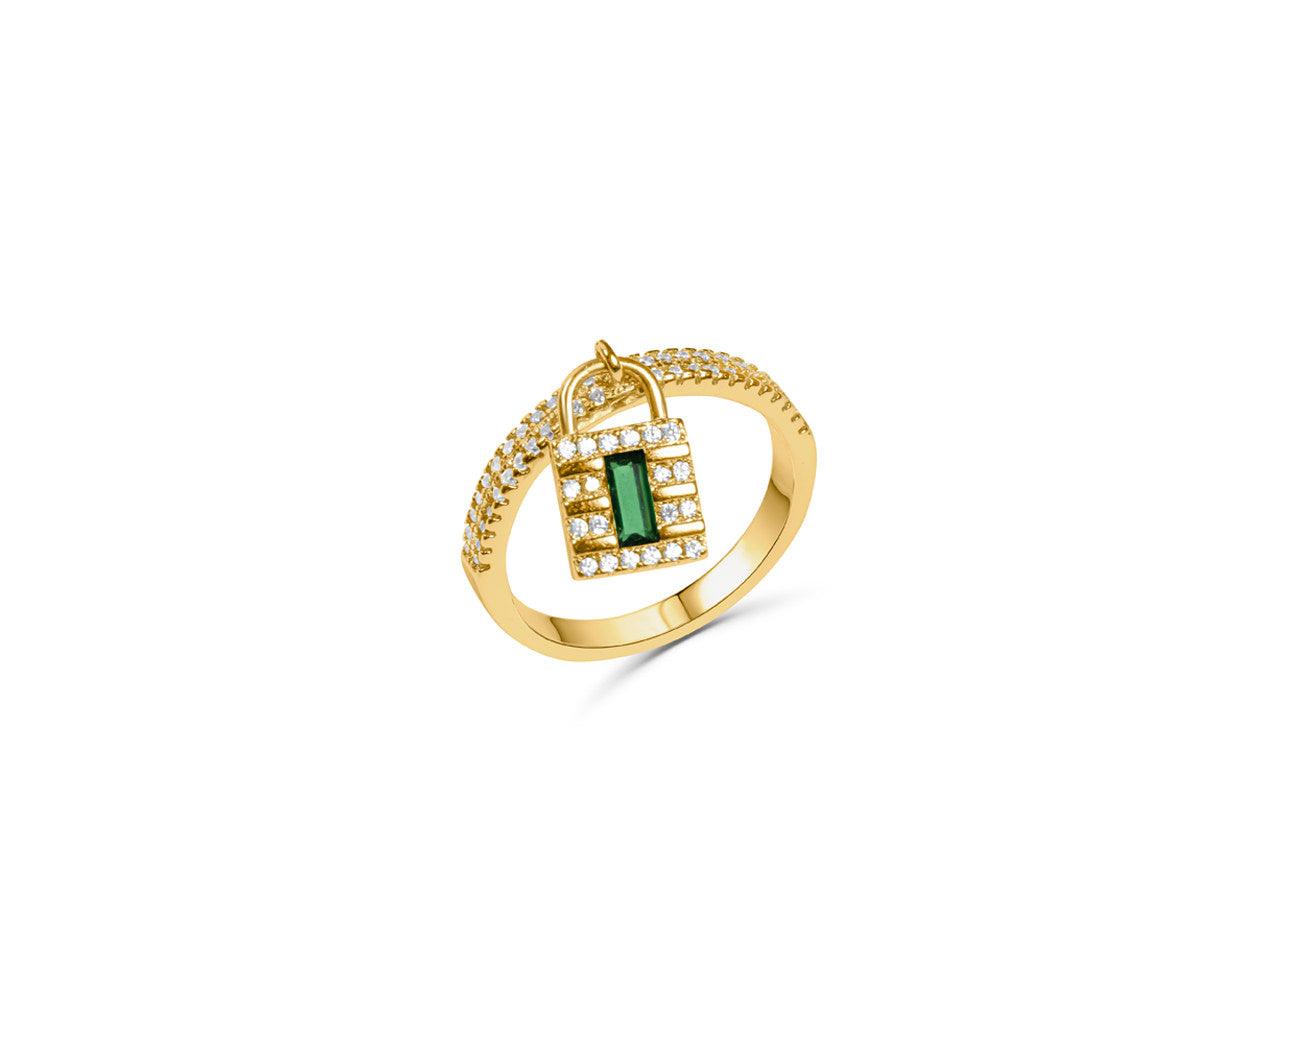 FAX Jewelry | 'Lockdown' 18K Gold Plated and Emerald Green Zirconia Ring